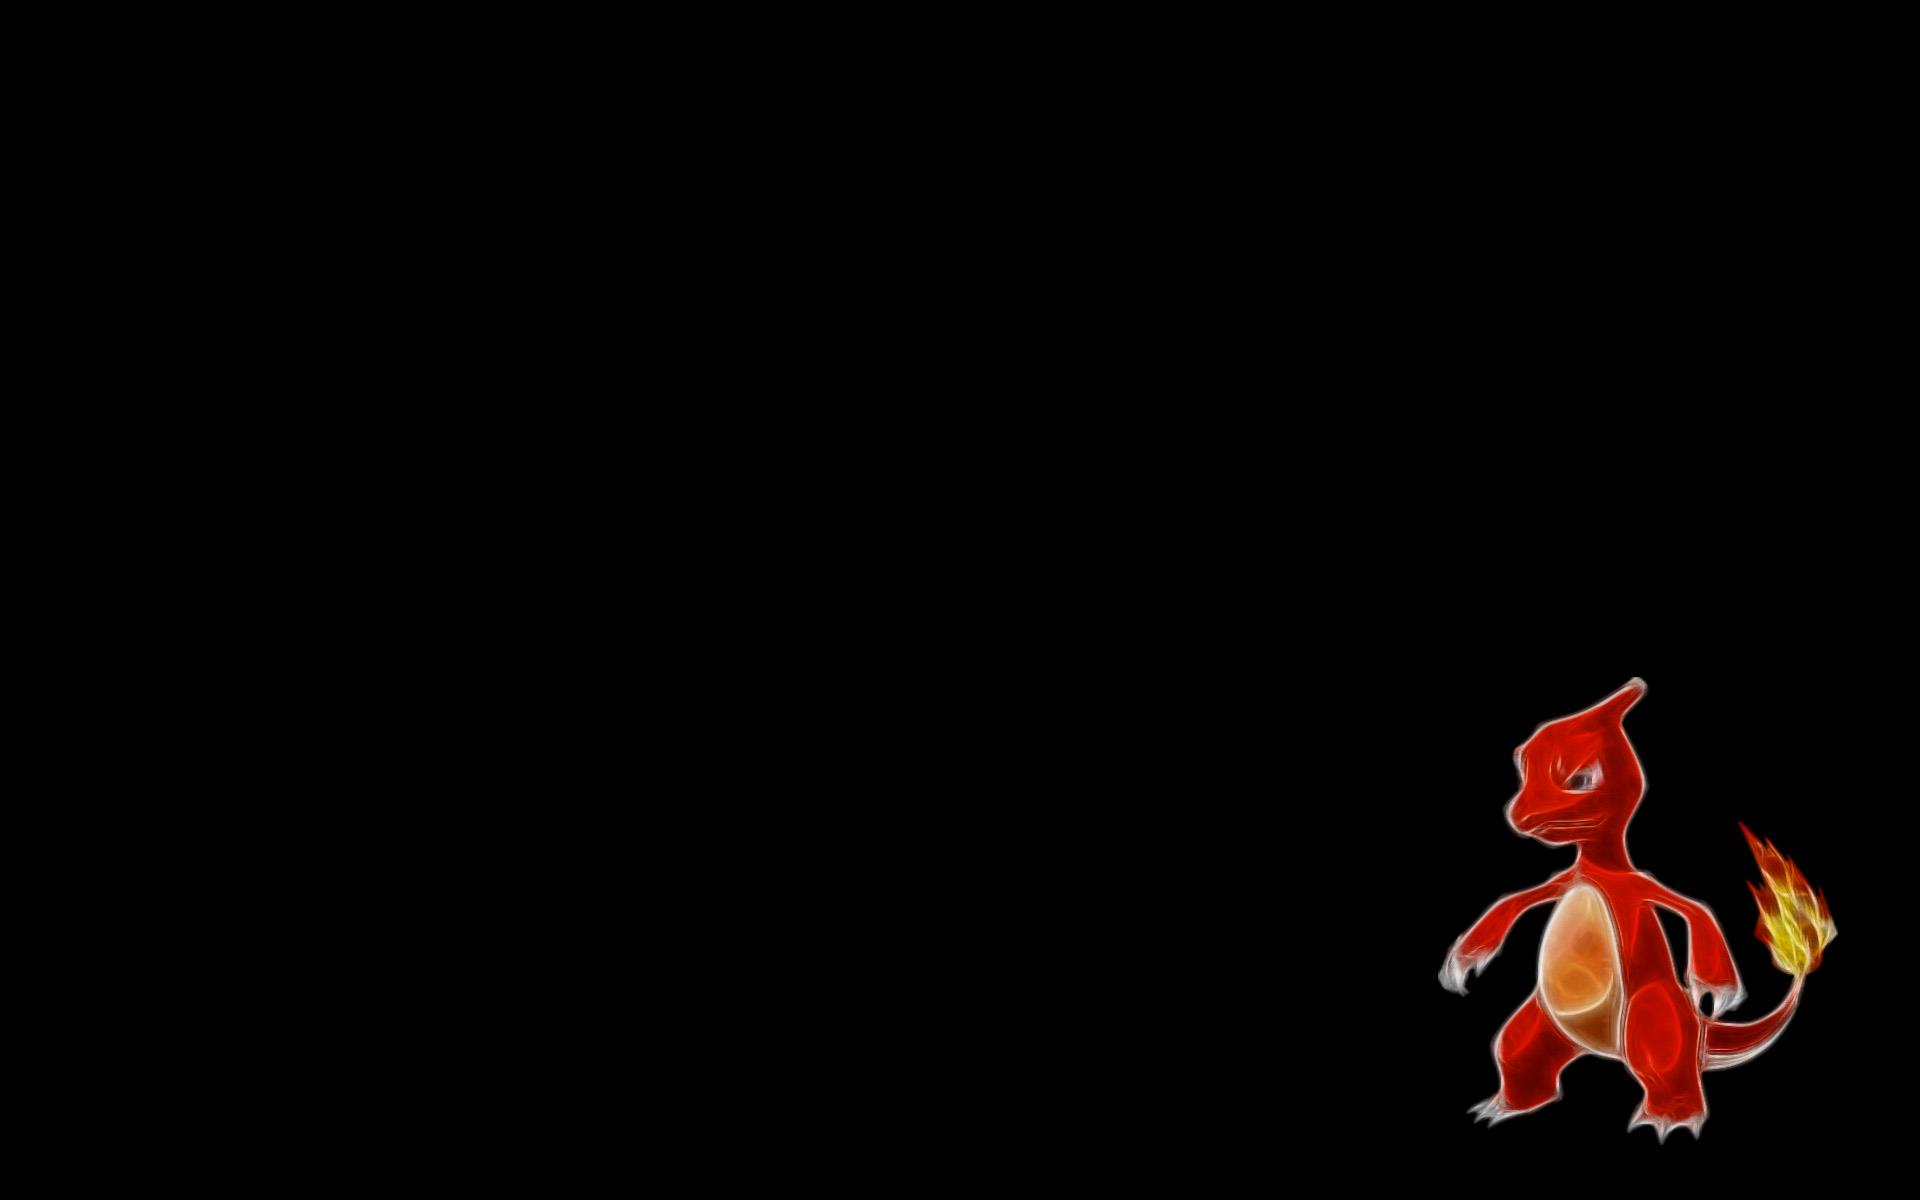 charmeleon-pokemon-wallpaper-free-download